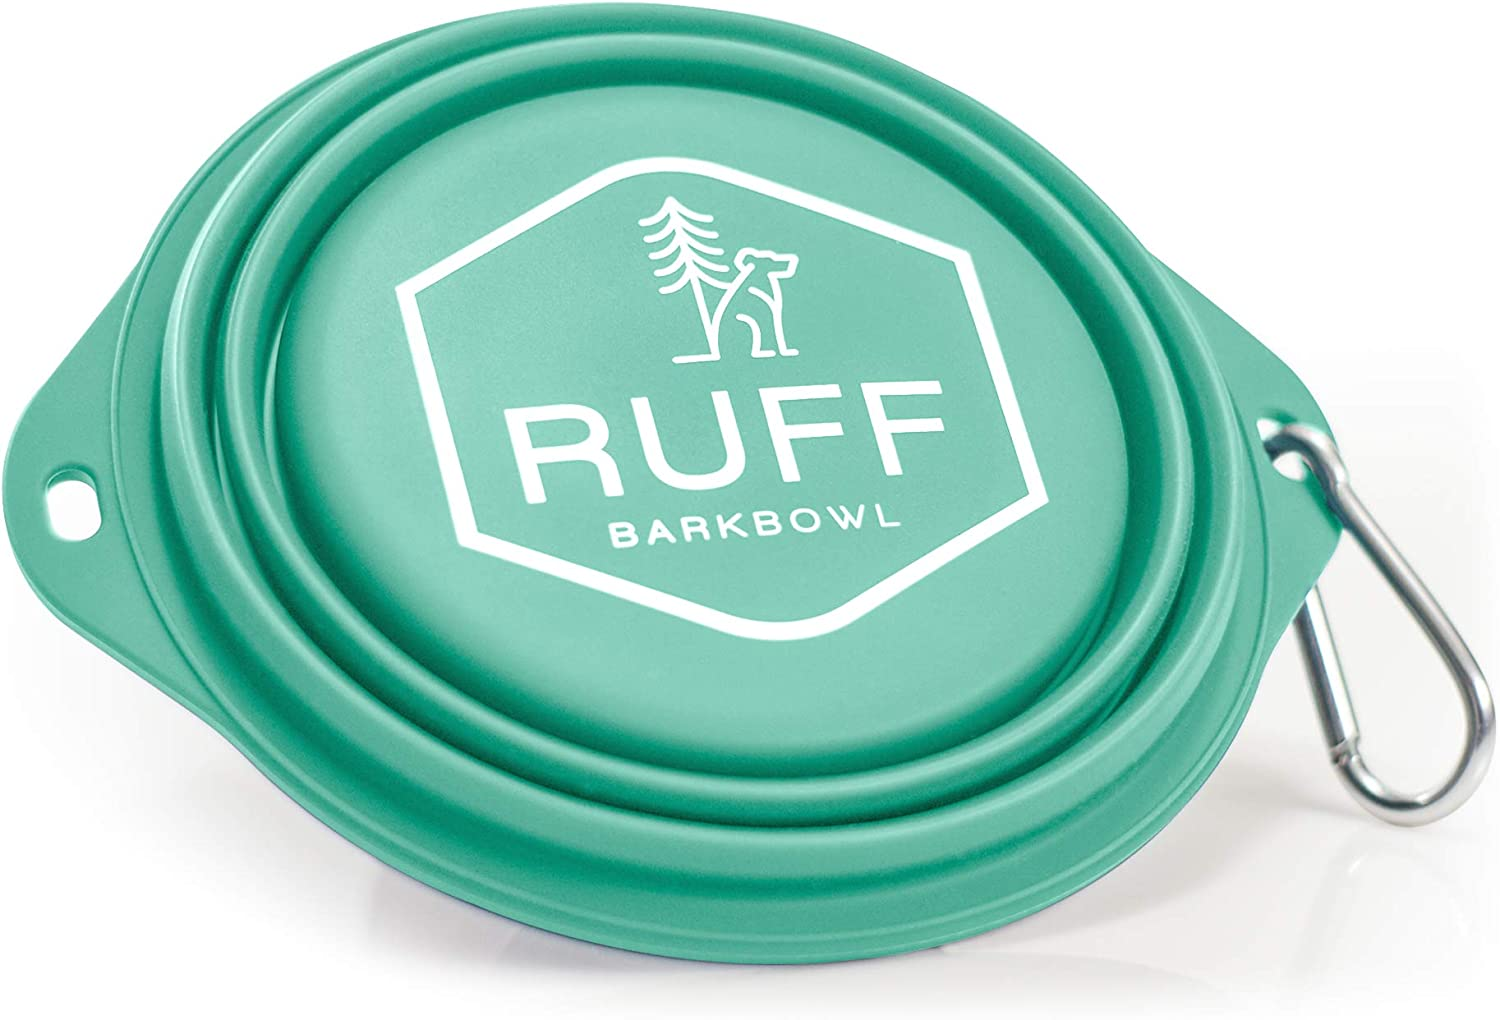 Ruff Products BarkBowl (Tiffany Blue, 800ml) - Collapsible Dog Bowl Premium Quality, Platinum-Cured Food Grade Silicone, No Plastic Rim, Food Safe, Large Travel Bowl